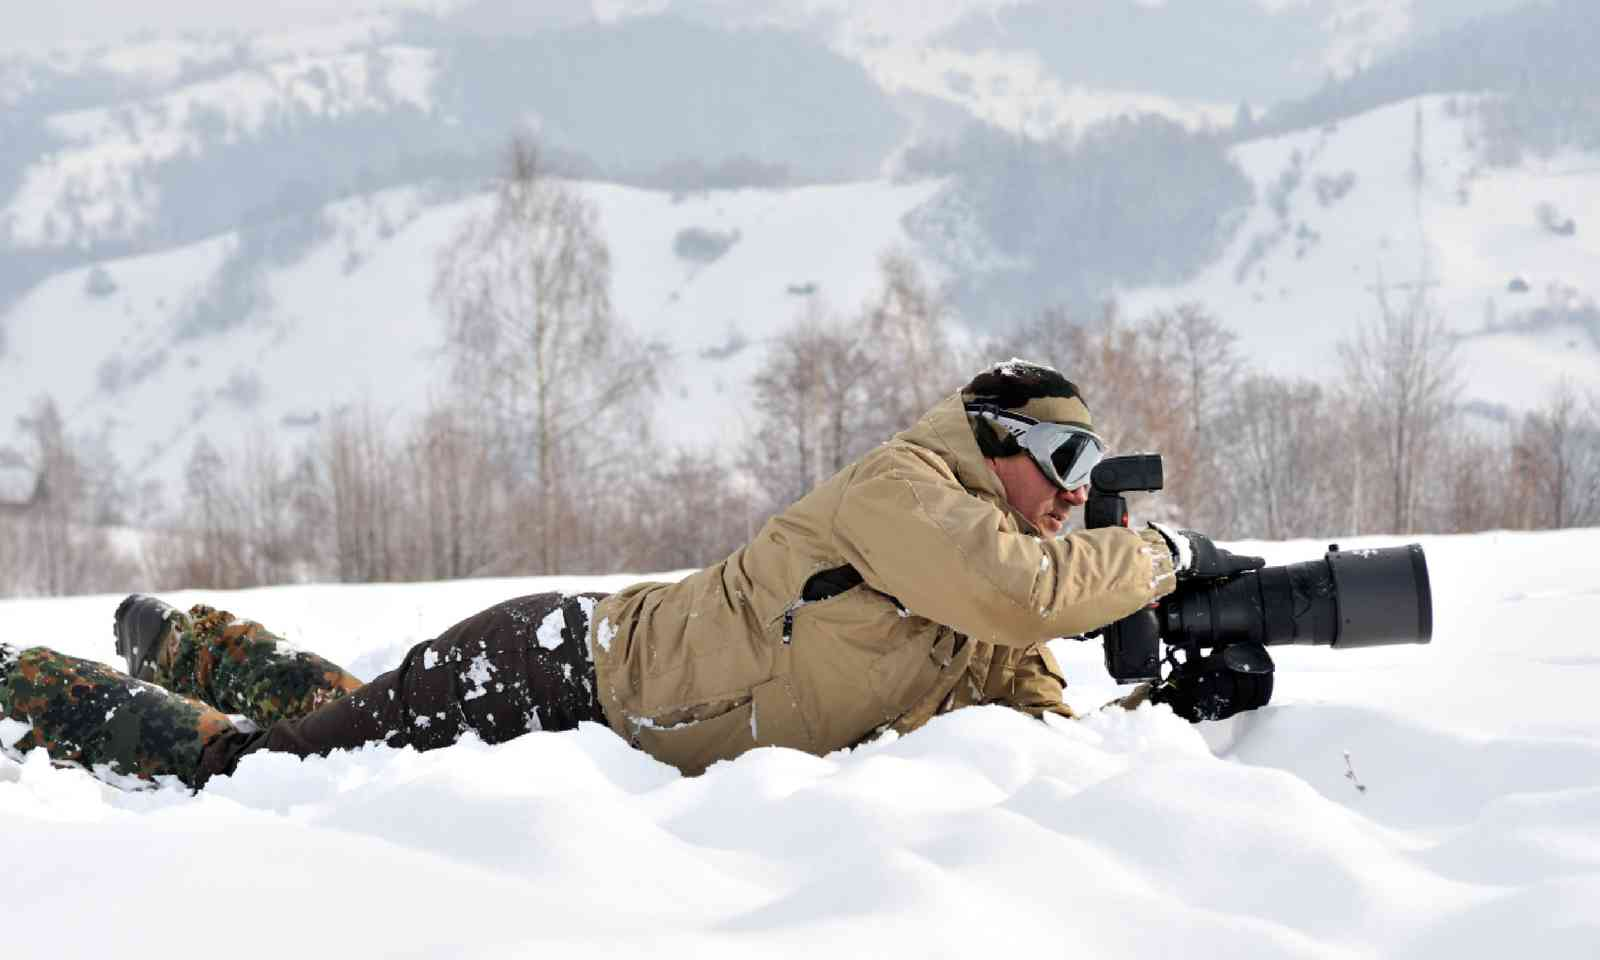 Get low – even in the snow! (Shutterstock)